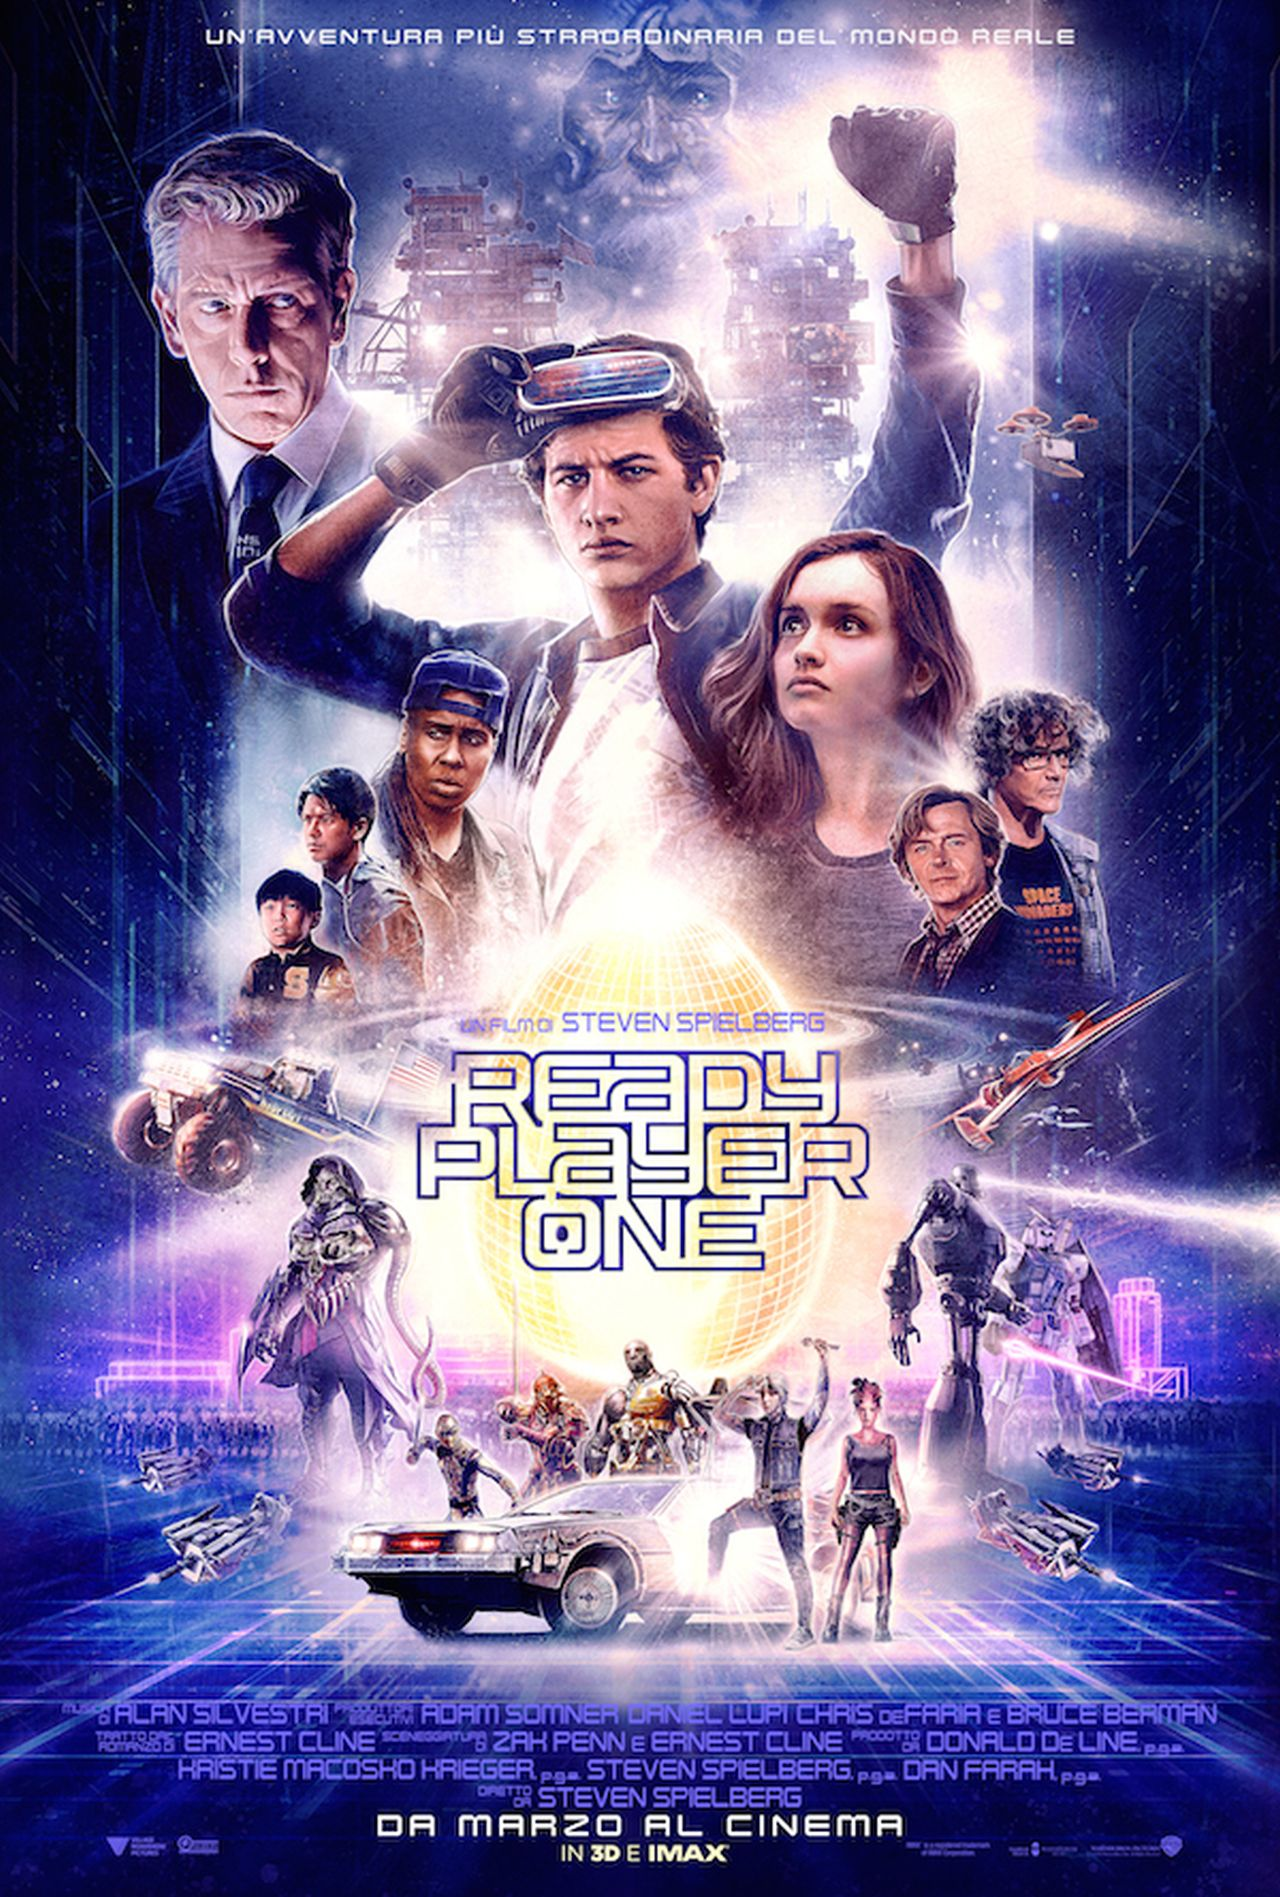 Ready Player One si presenta con una nuova locandina